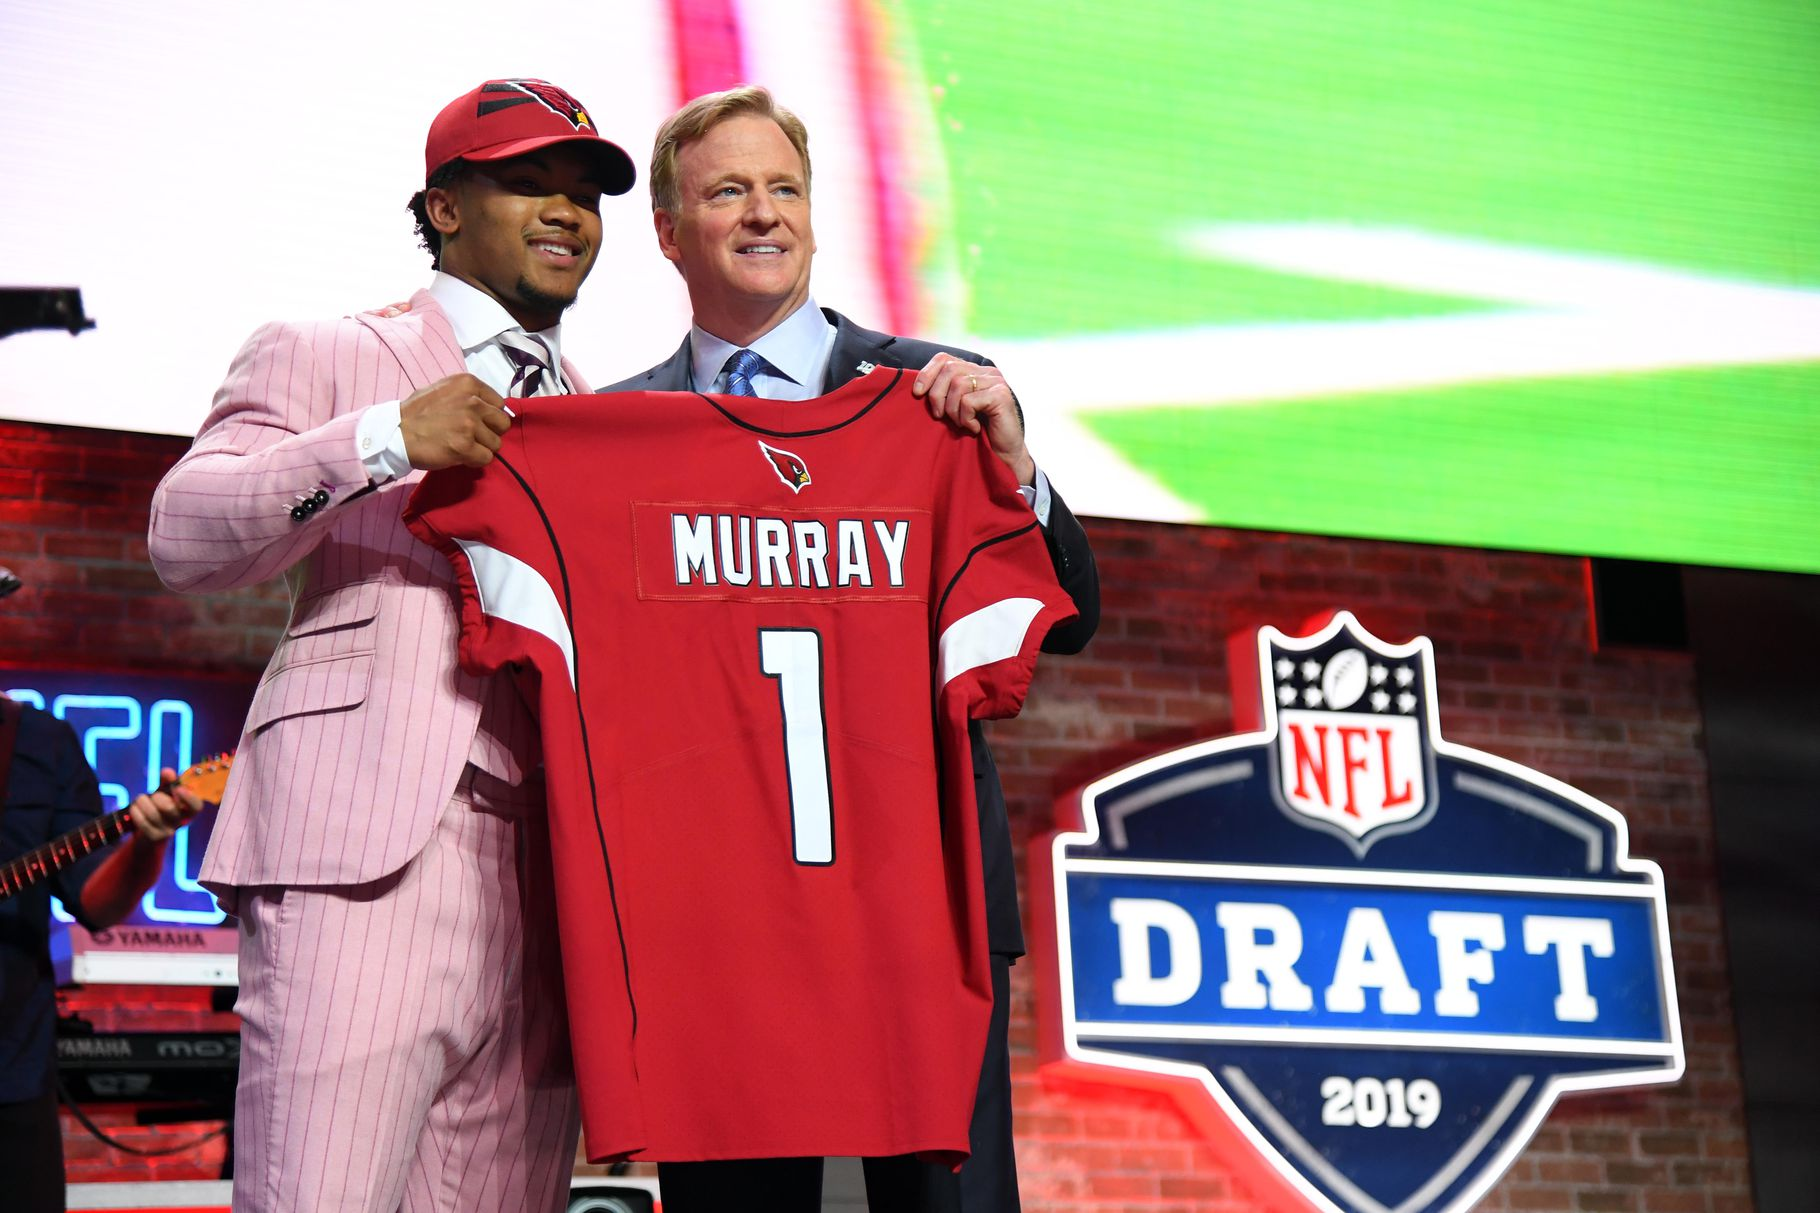 Roger Goodell presents Kyler Murray after he is taken first overall by the Arizona Cardinals in the 2019 NFL Draft